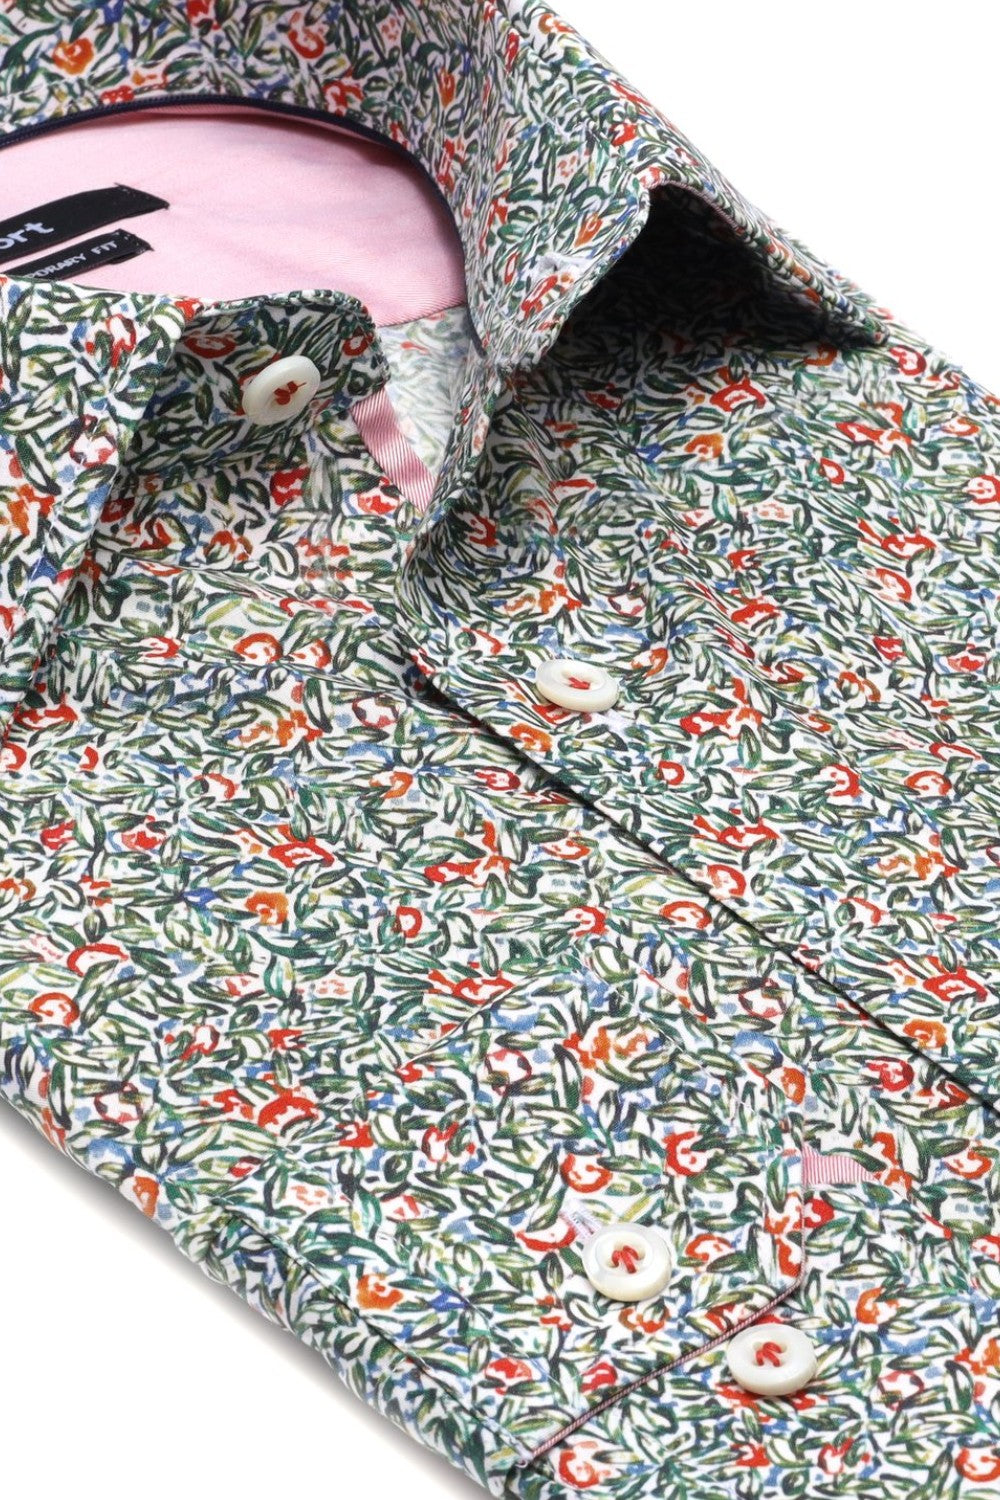 THE GARDEN SHIRT (MULTICOLOR)